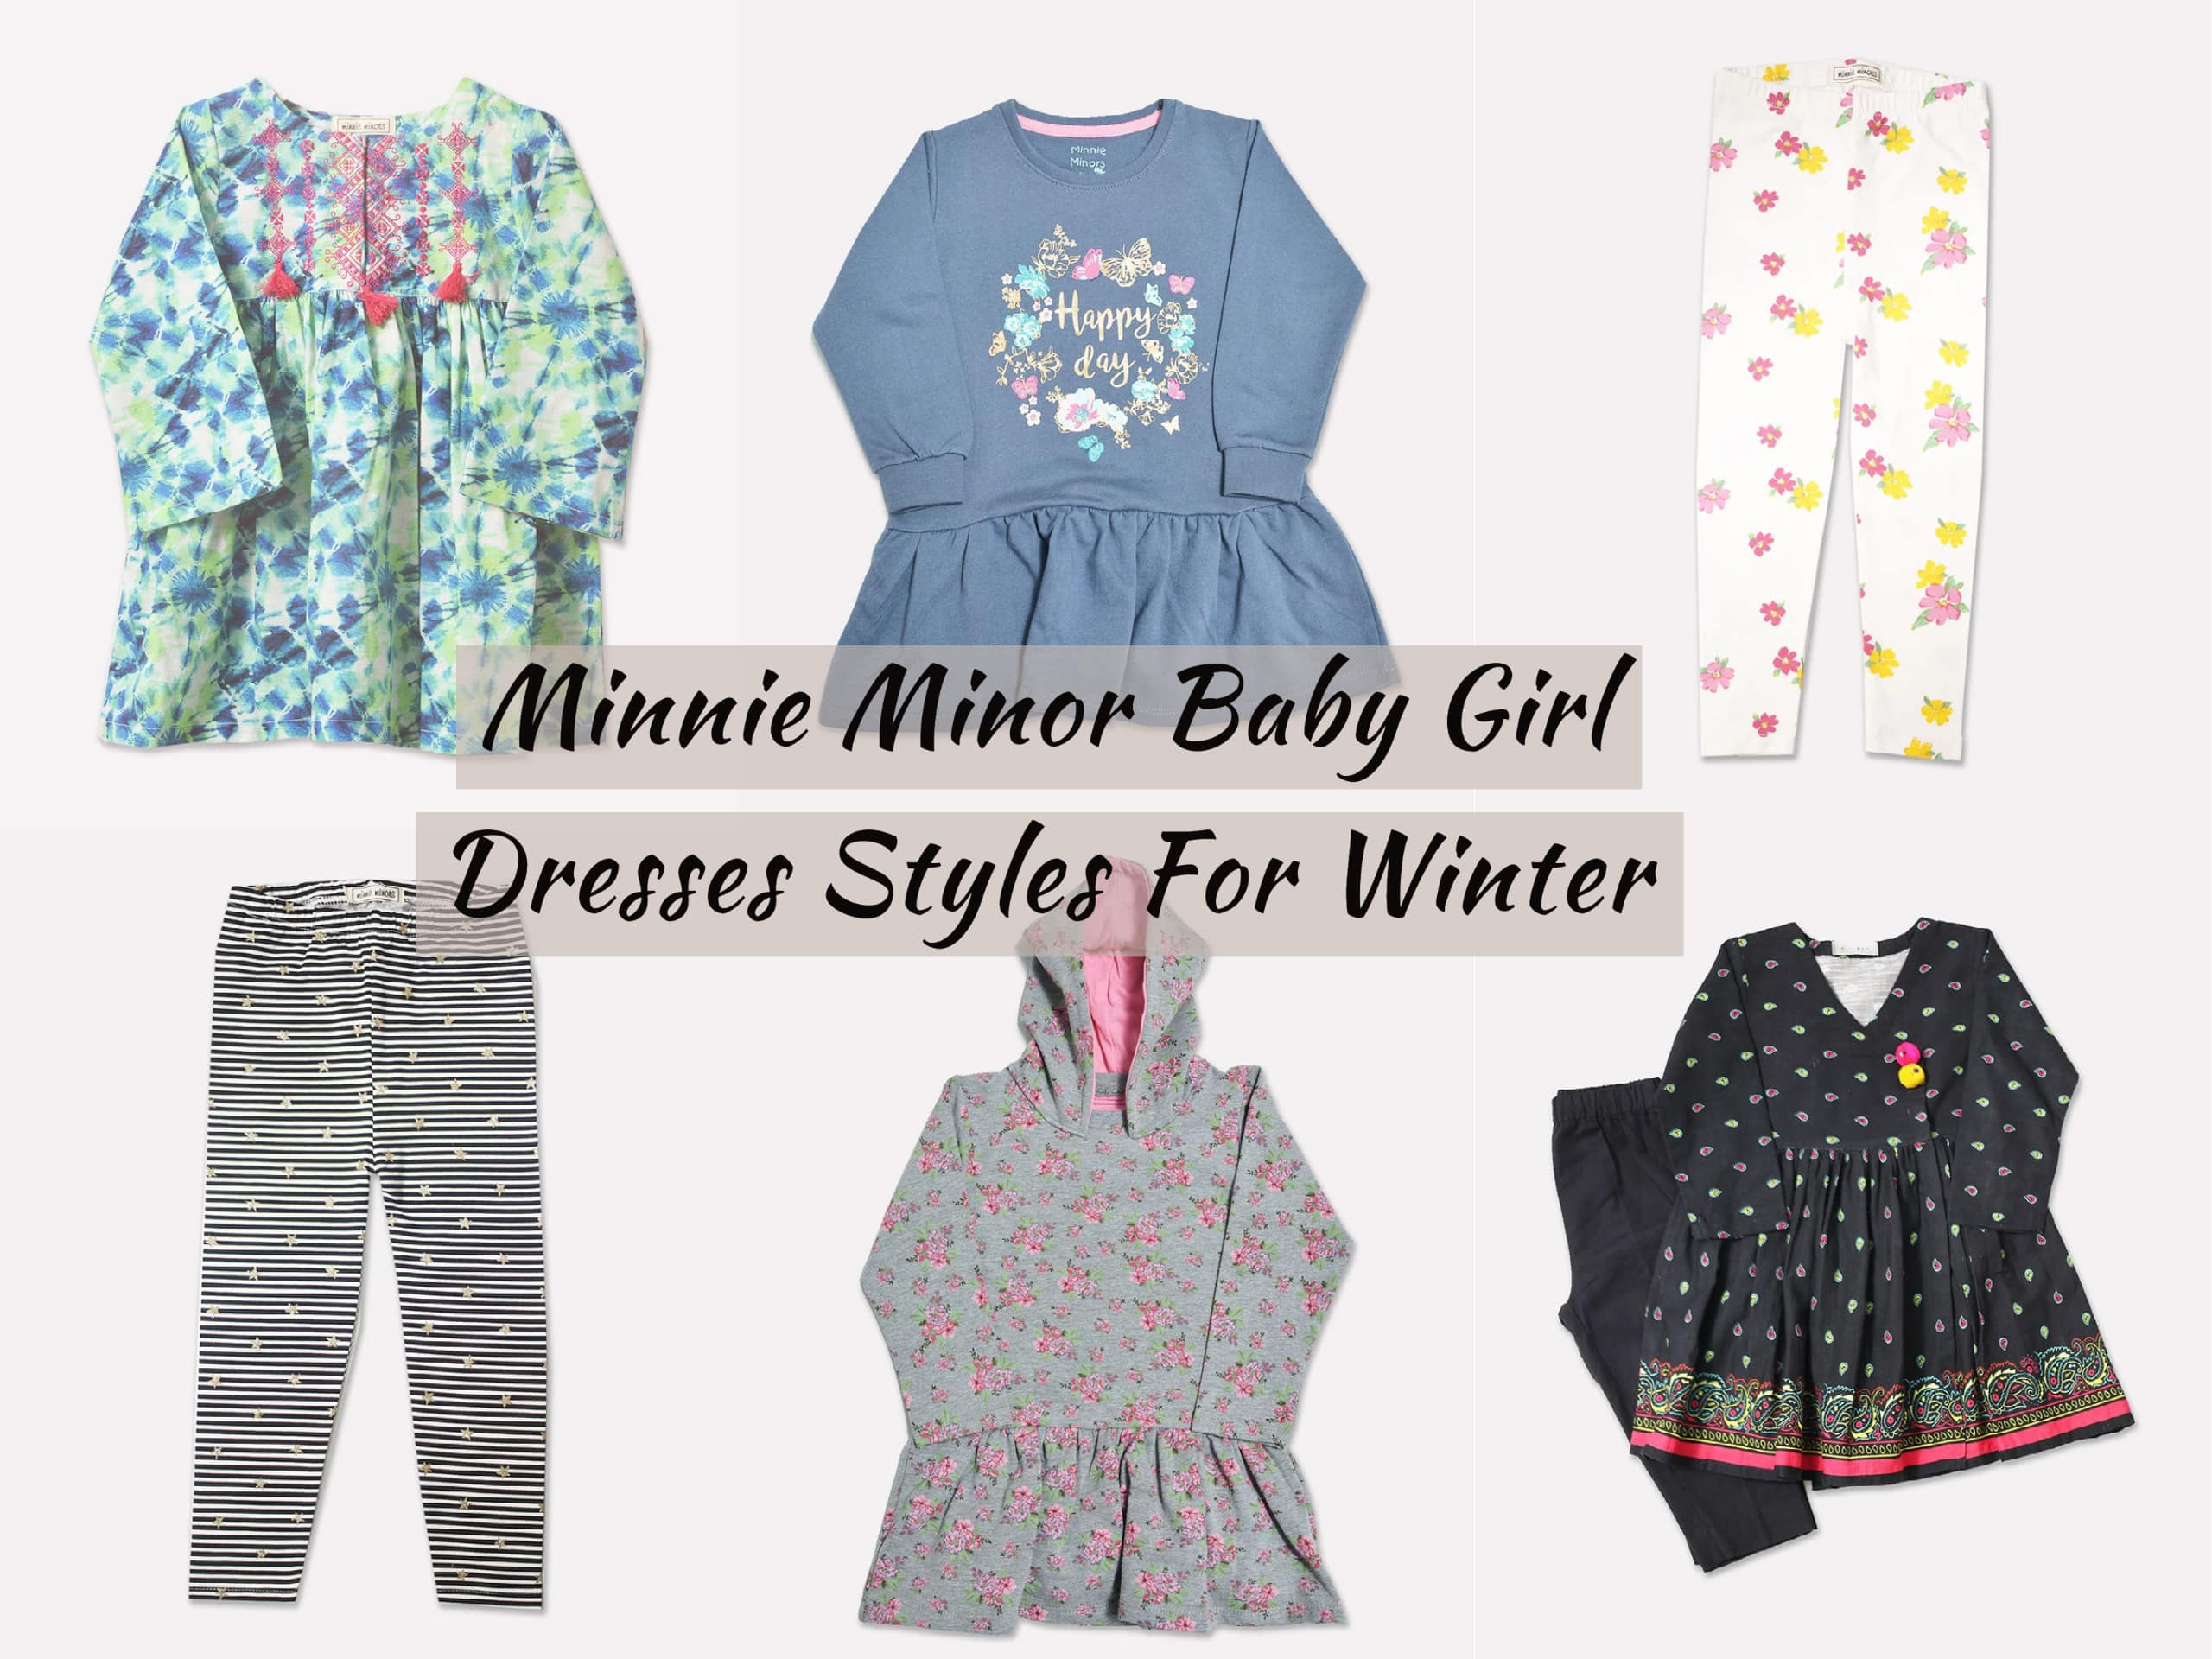 Minnie Minor Baby Girl Dresses Styles For Winter